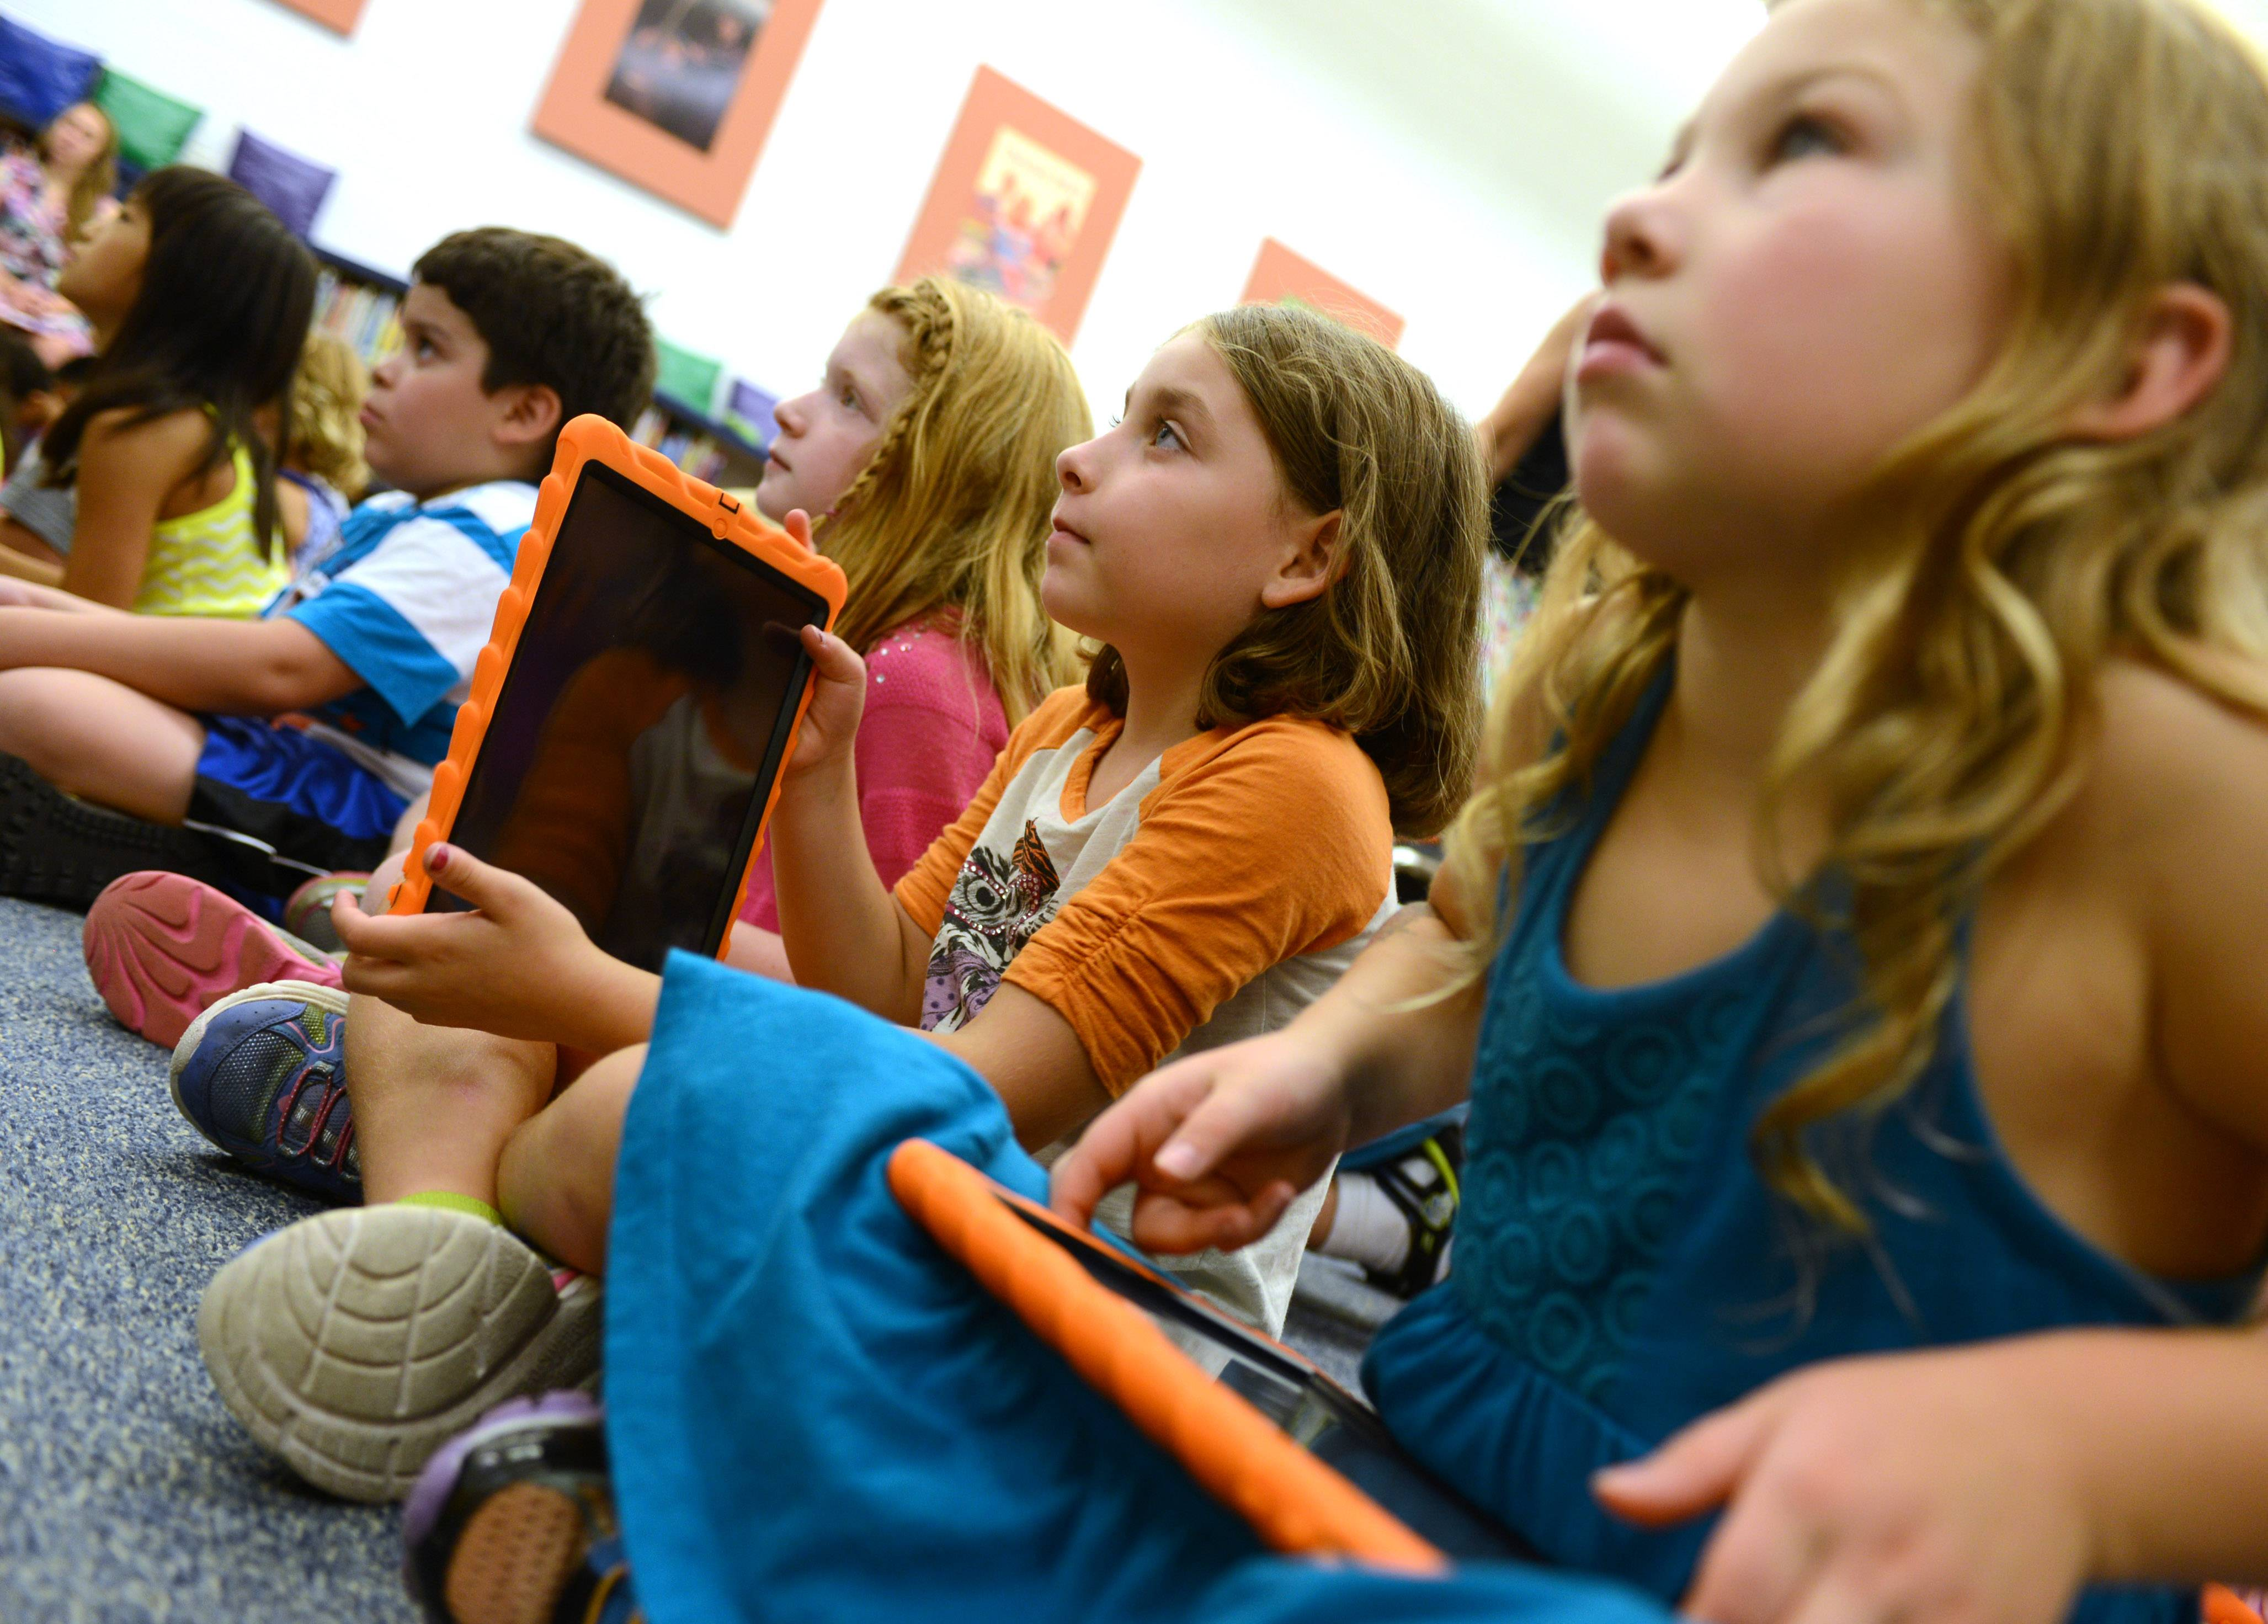 Oak Grove Elementary School third grade students Maddison Carstens, second from right, and Ava Hertsberg, right, listen during iPad instruction on first day of school Friday in Green Oaks. Students in grades kindergarten through fifth will get to use iPads in the classroom.